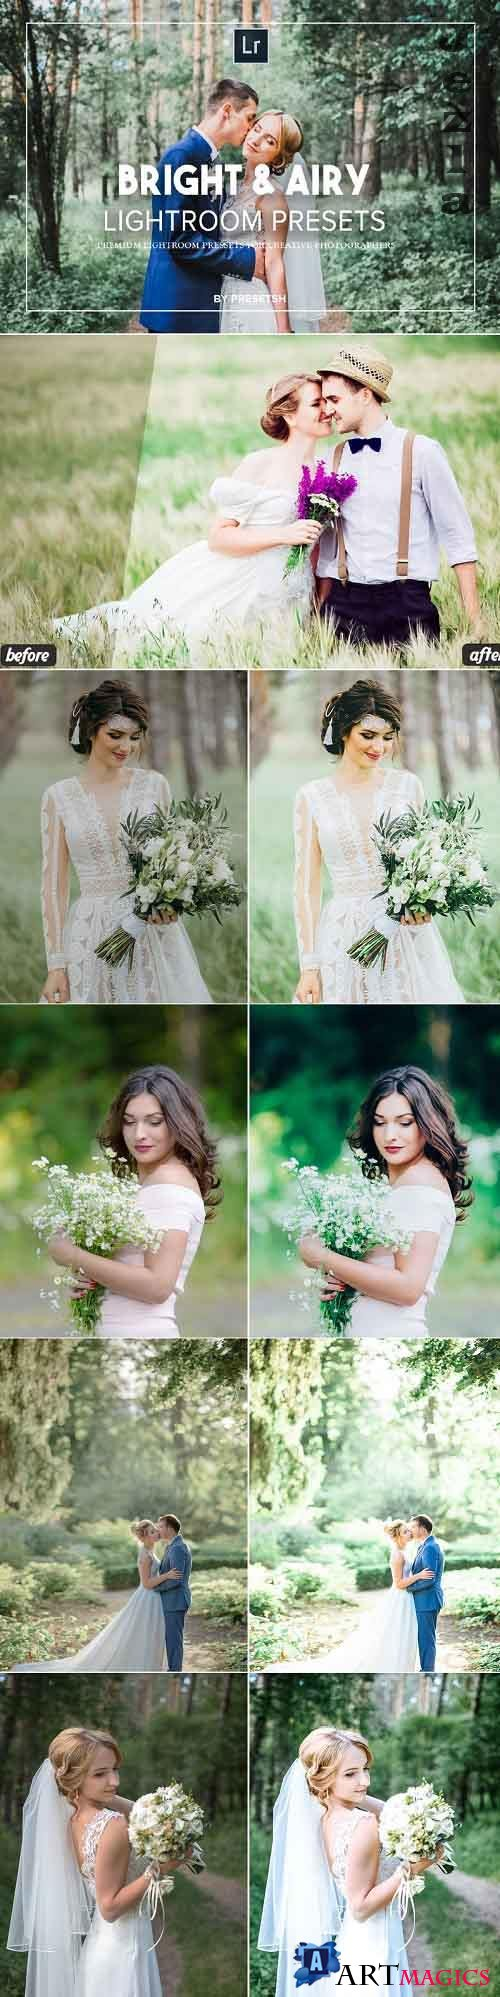 Bright & Airy Lightroom Presets 5125162